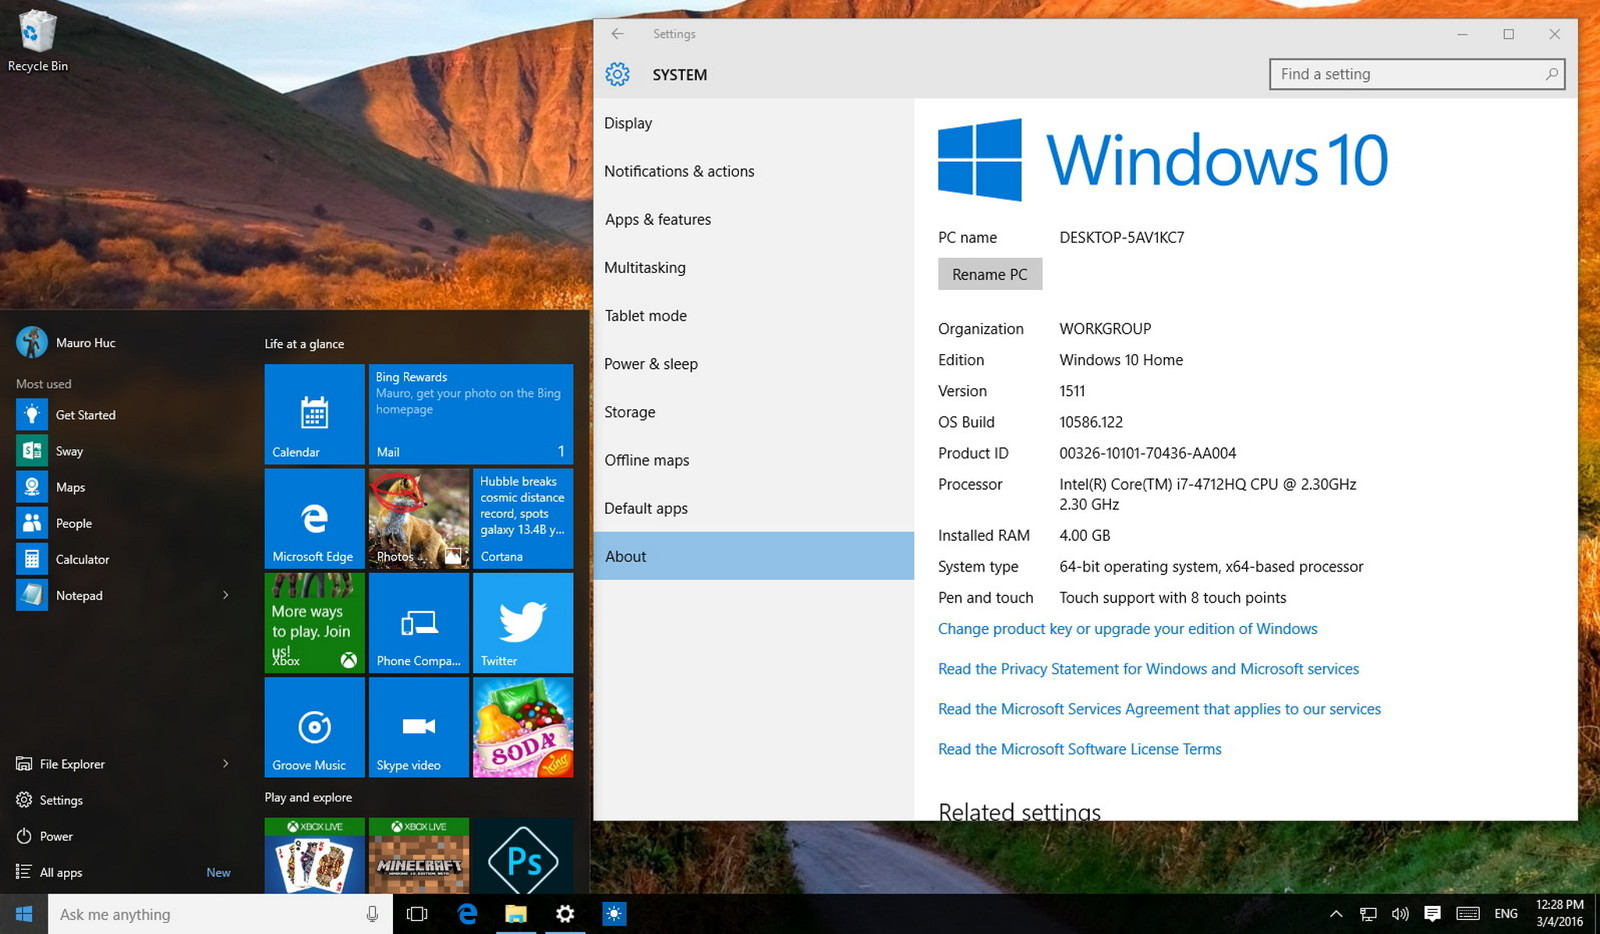 How to change 32-bit version of Windows 7/8 to 64-bit for free when upgrading to Windows 10